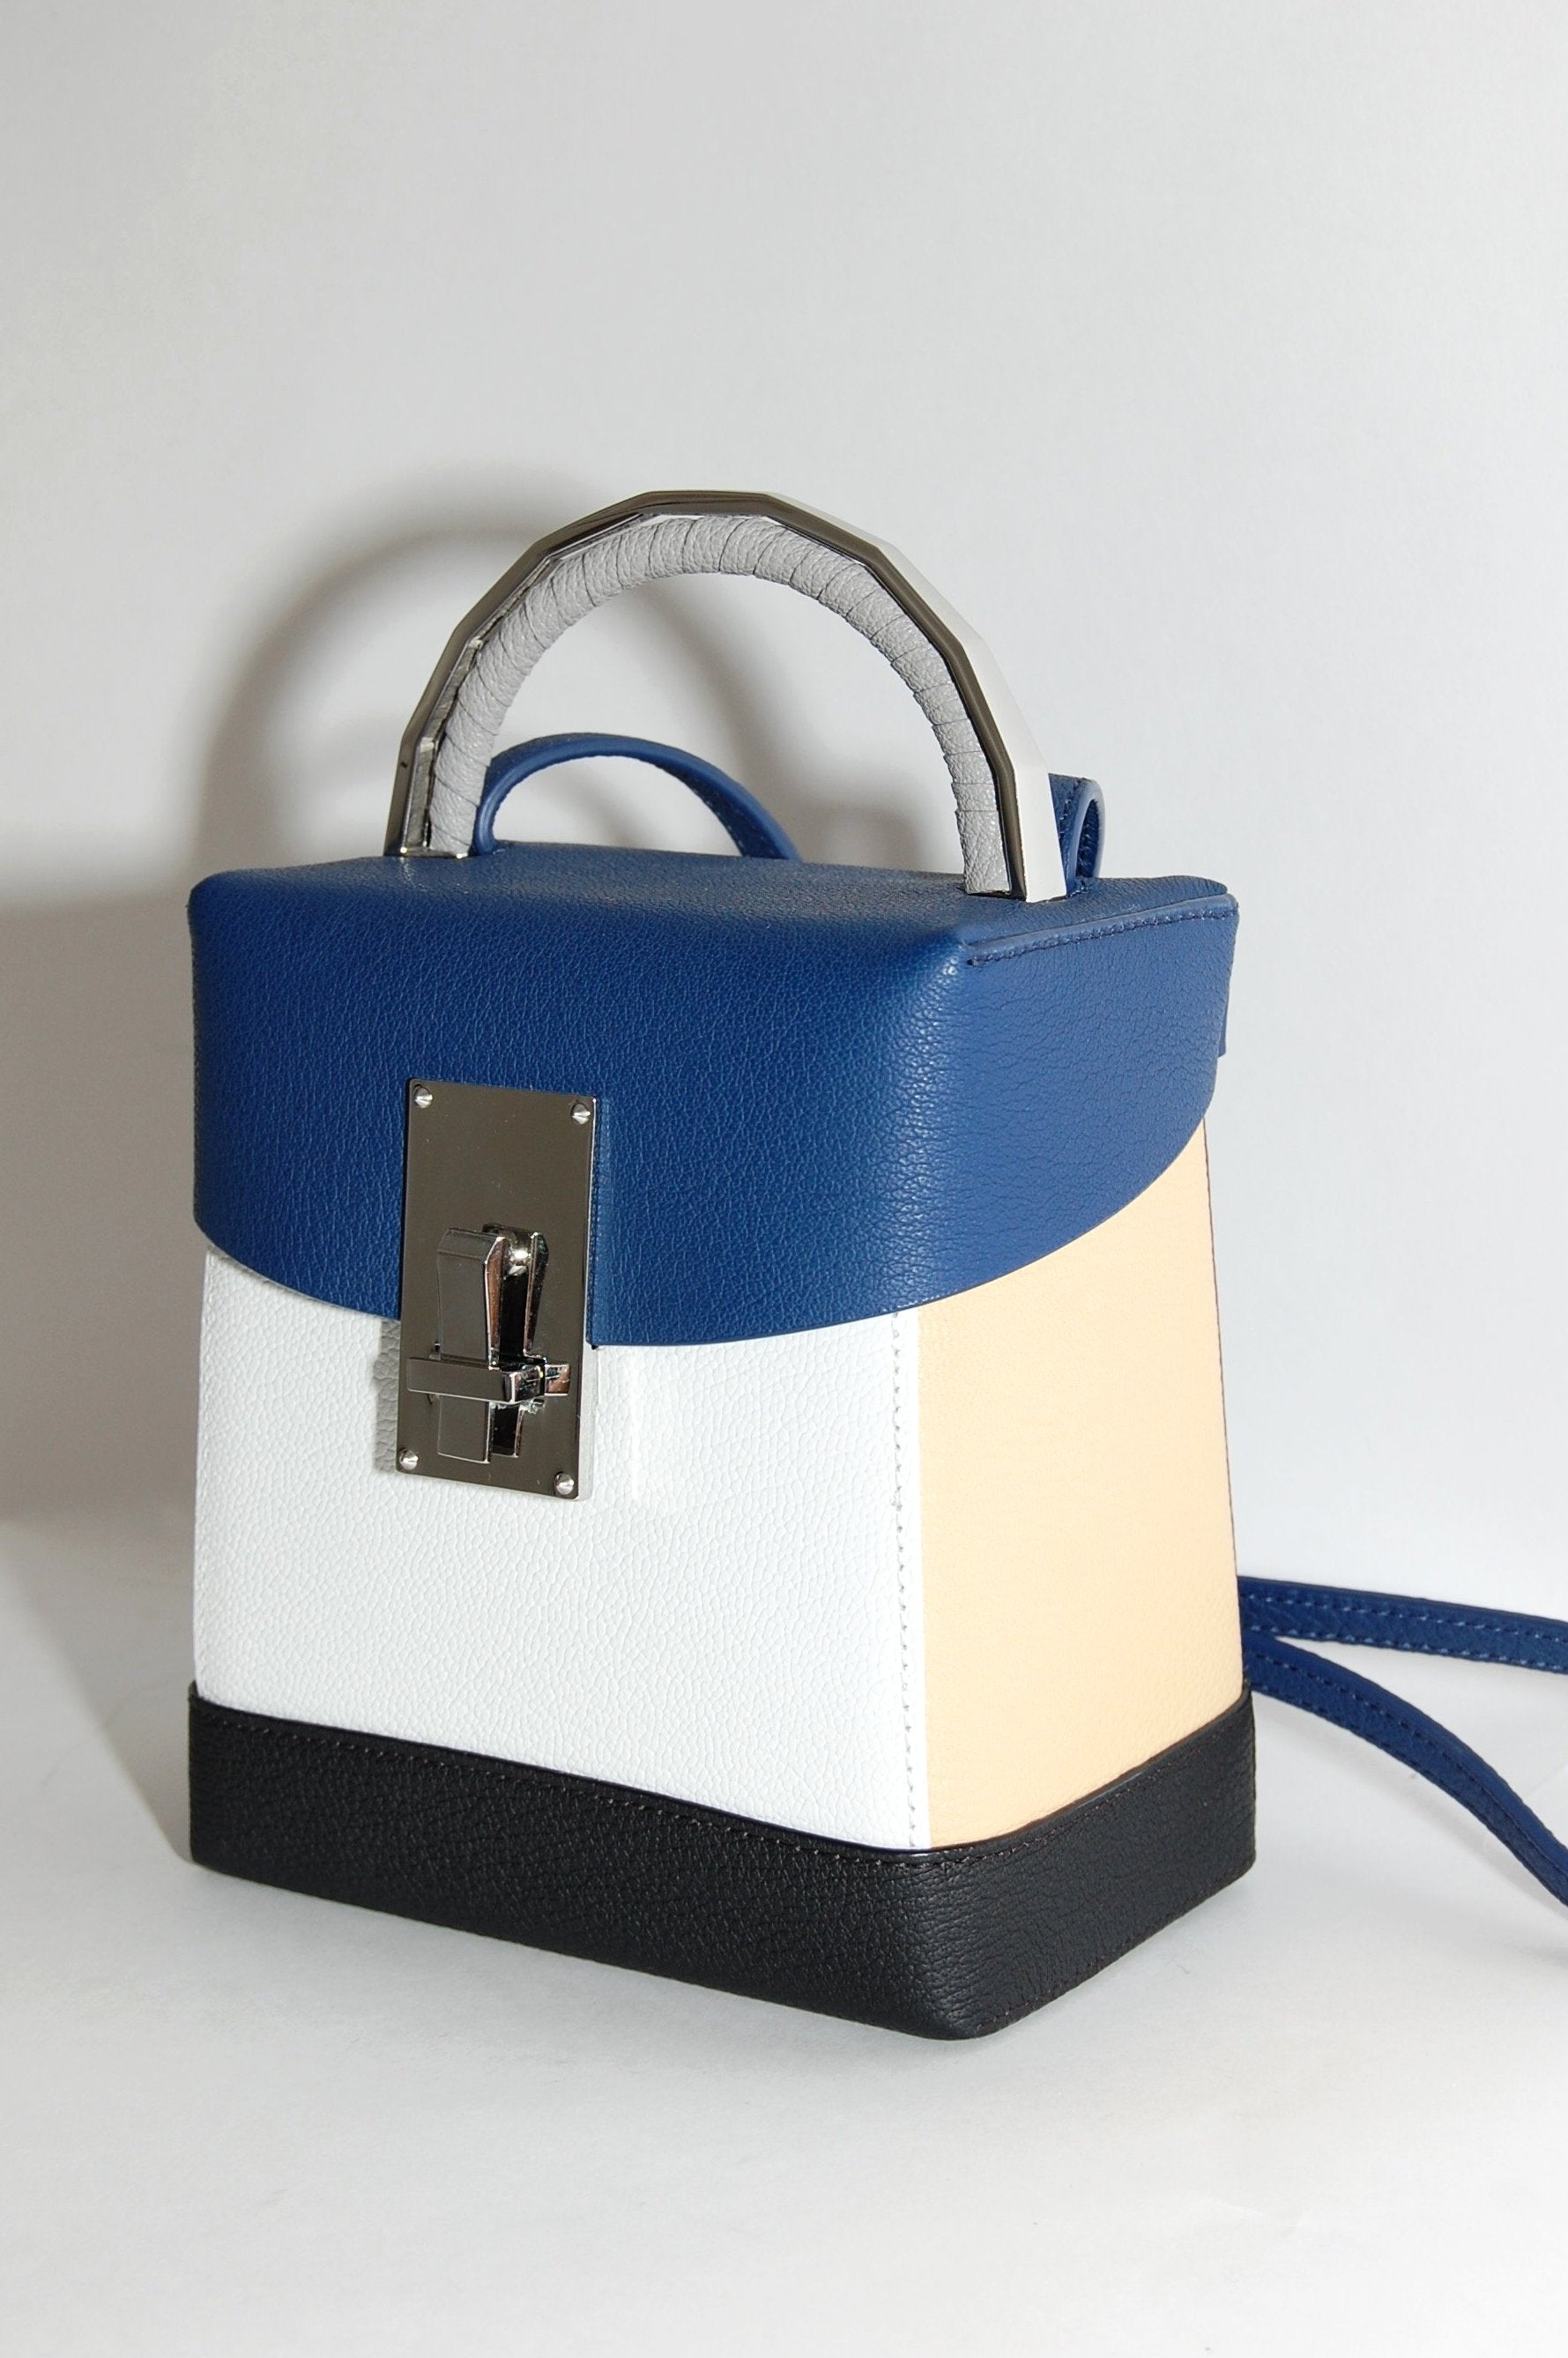 ca8e95bed235 The Volon Great L. Box Bag in Navy Blue and White Leather - Curio ...